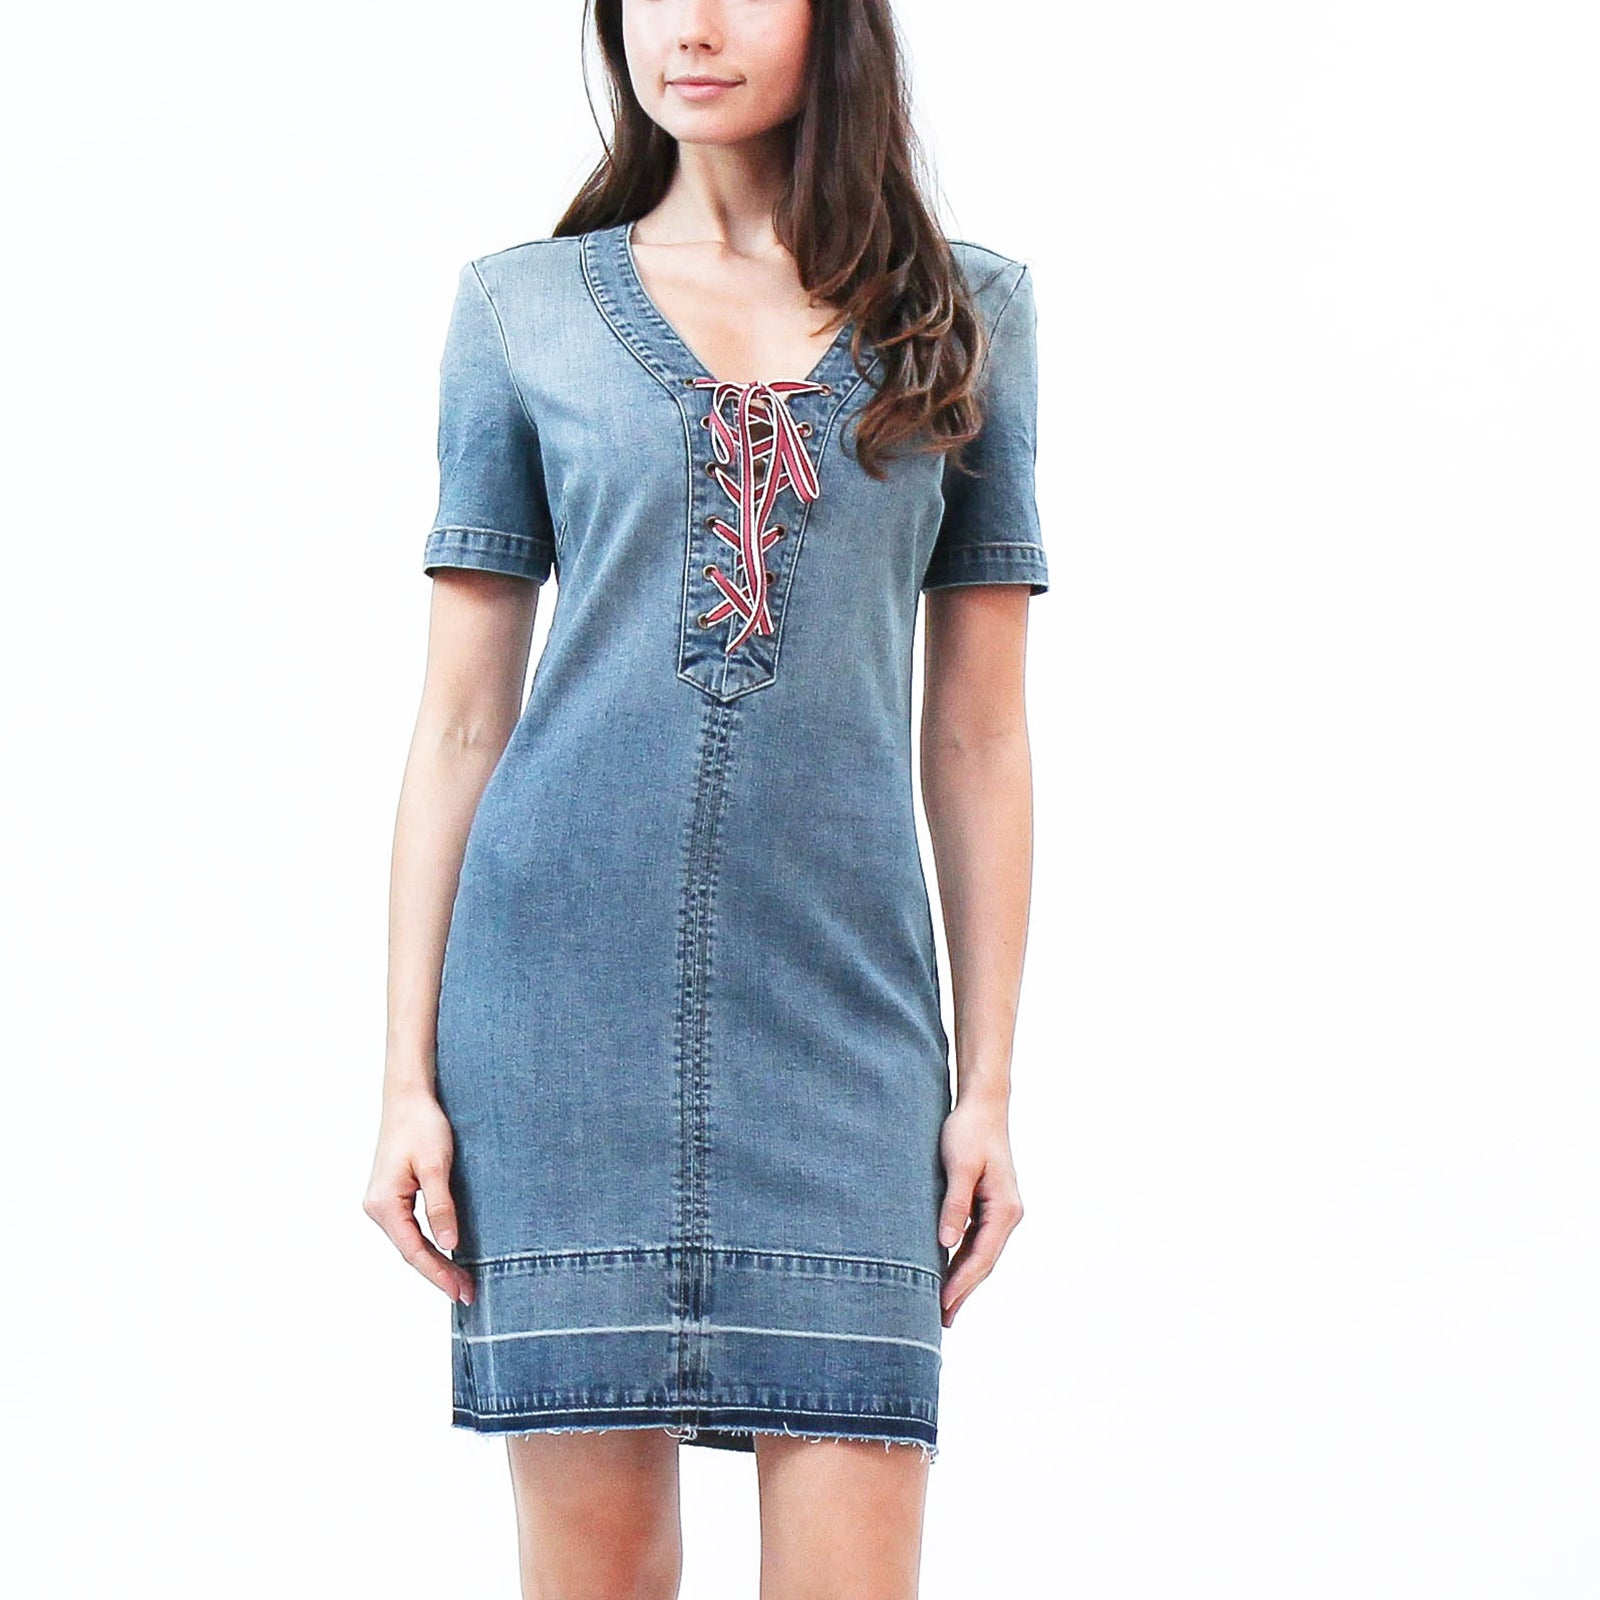 423fa44d9ad Katie Dres · Denim Dress · Level 99 Shift Dress · Level 99 Dress · Level 99  Dress